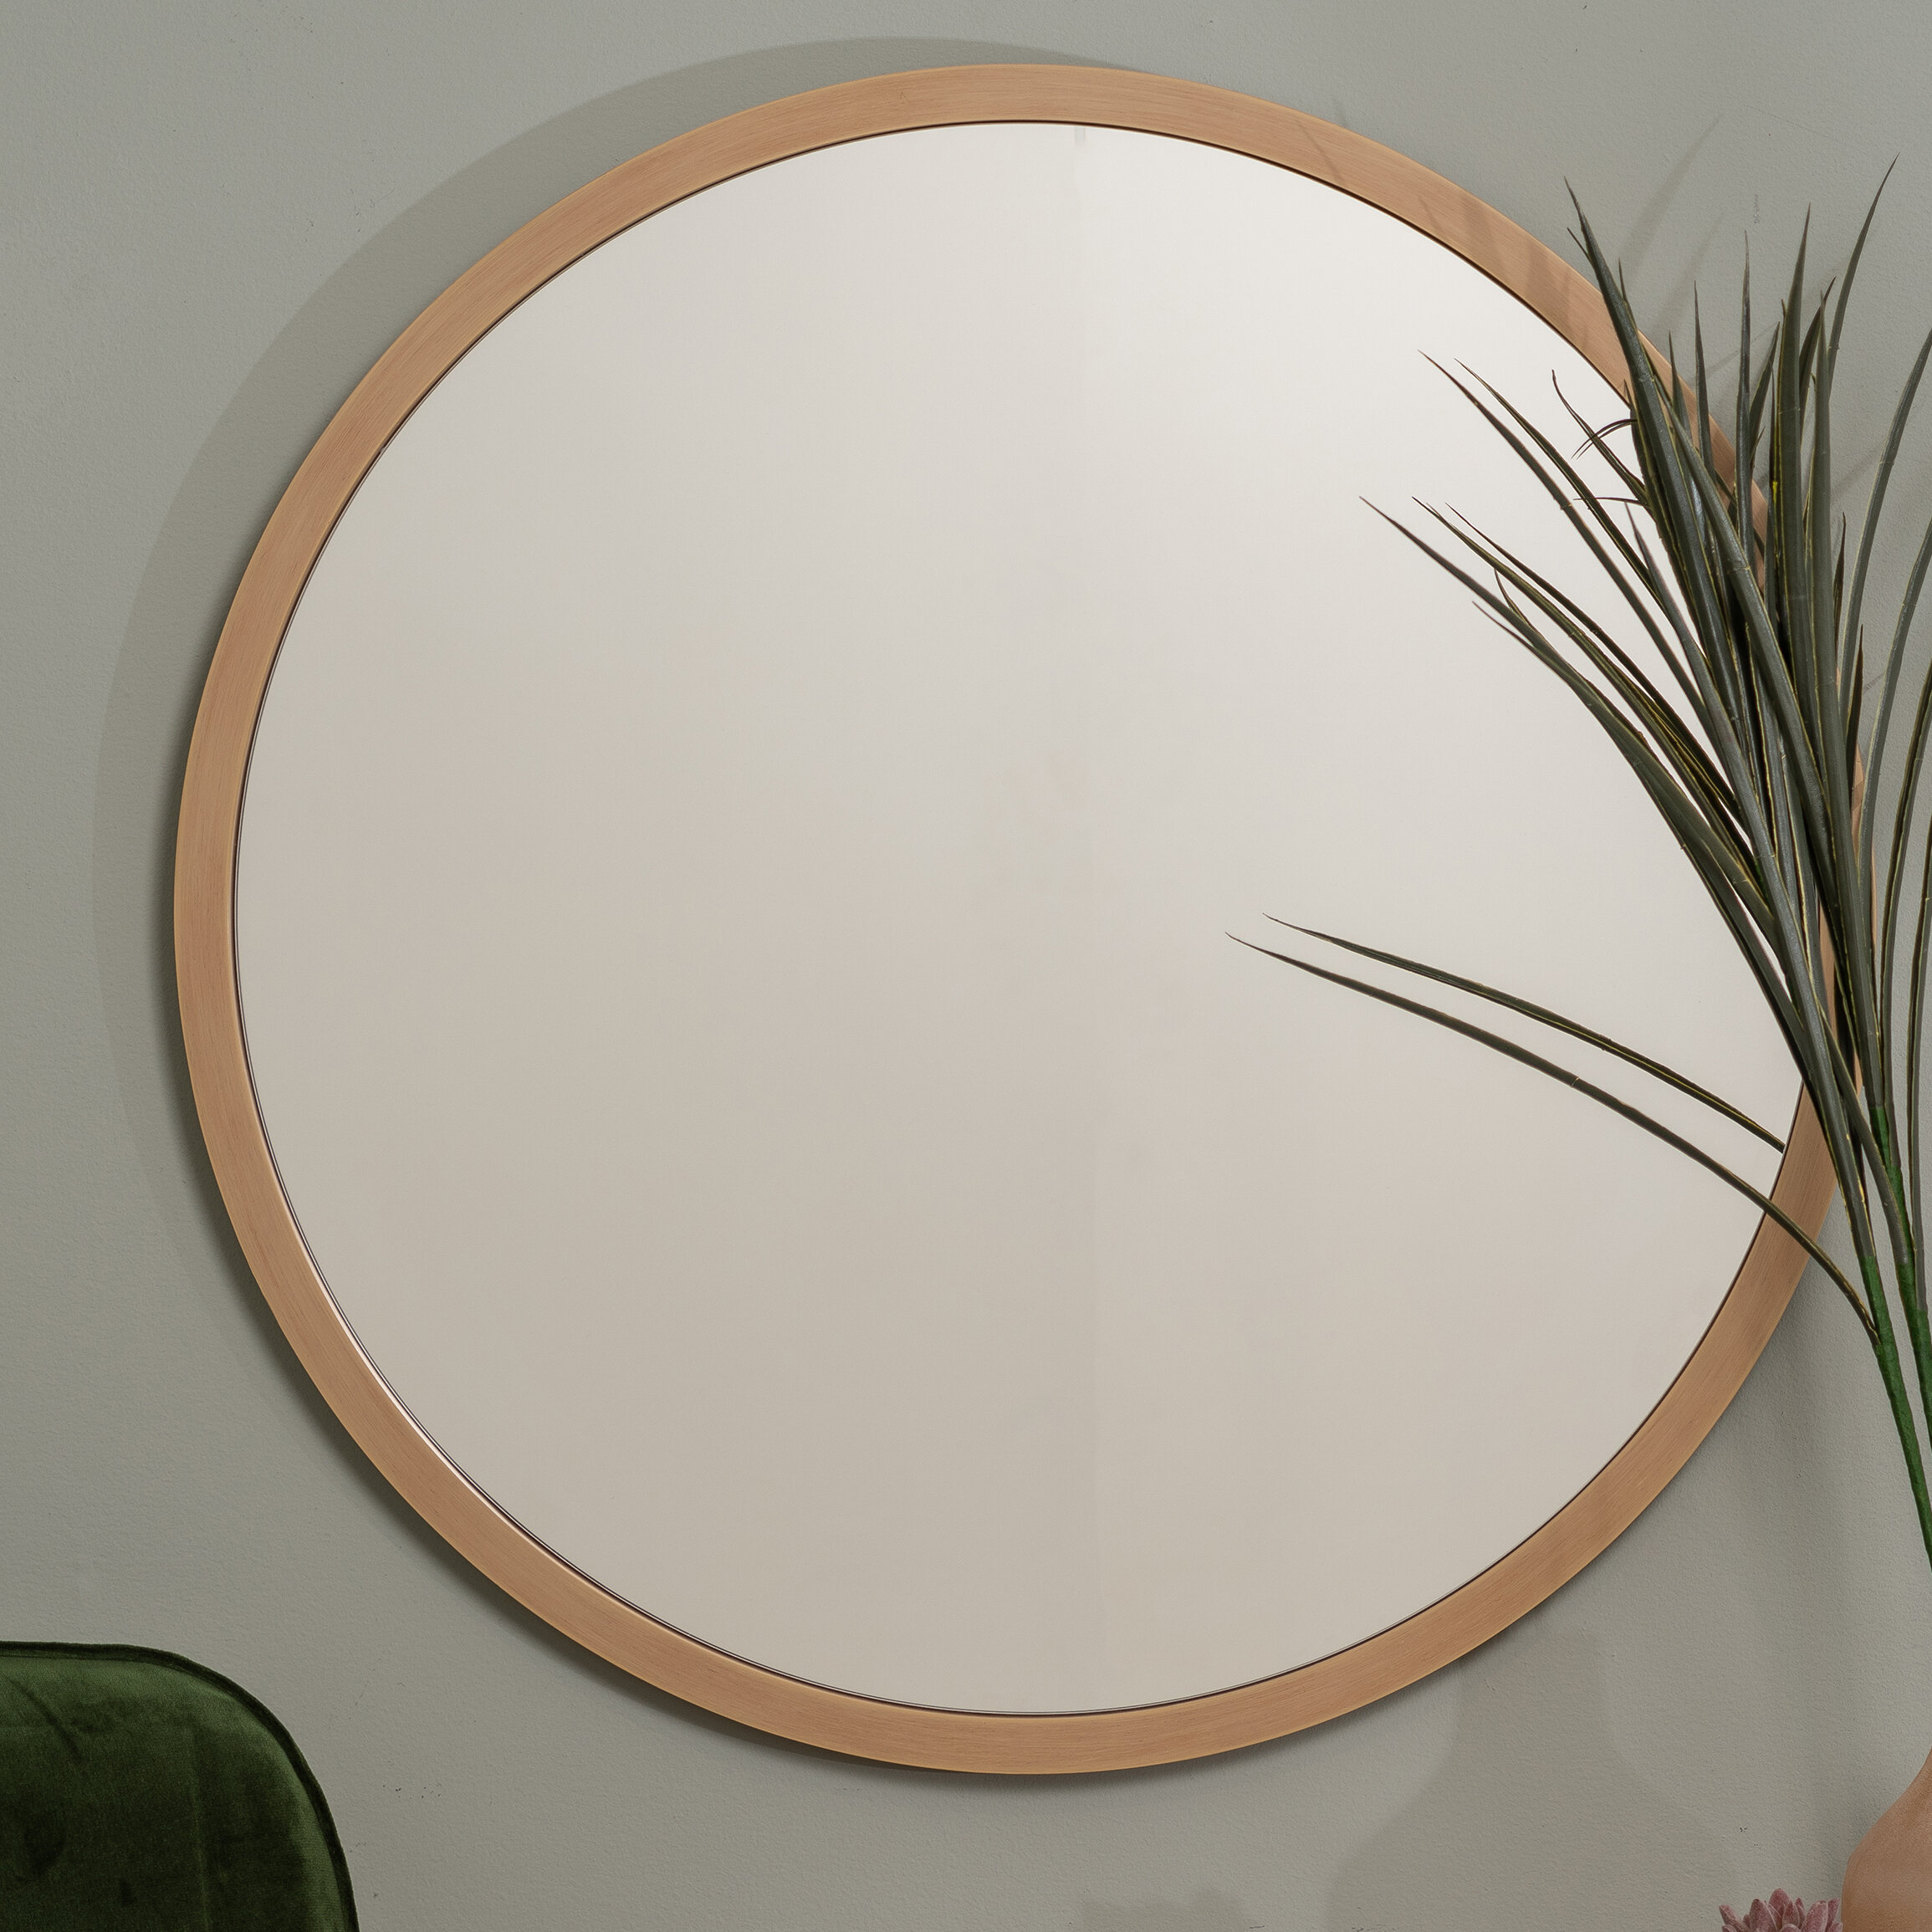 Swansea Scandinavian Round Wall Mirror With Loftis Modern & Contemporary Accent Wall Mirrors (View 15 of 20)